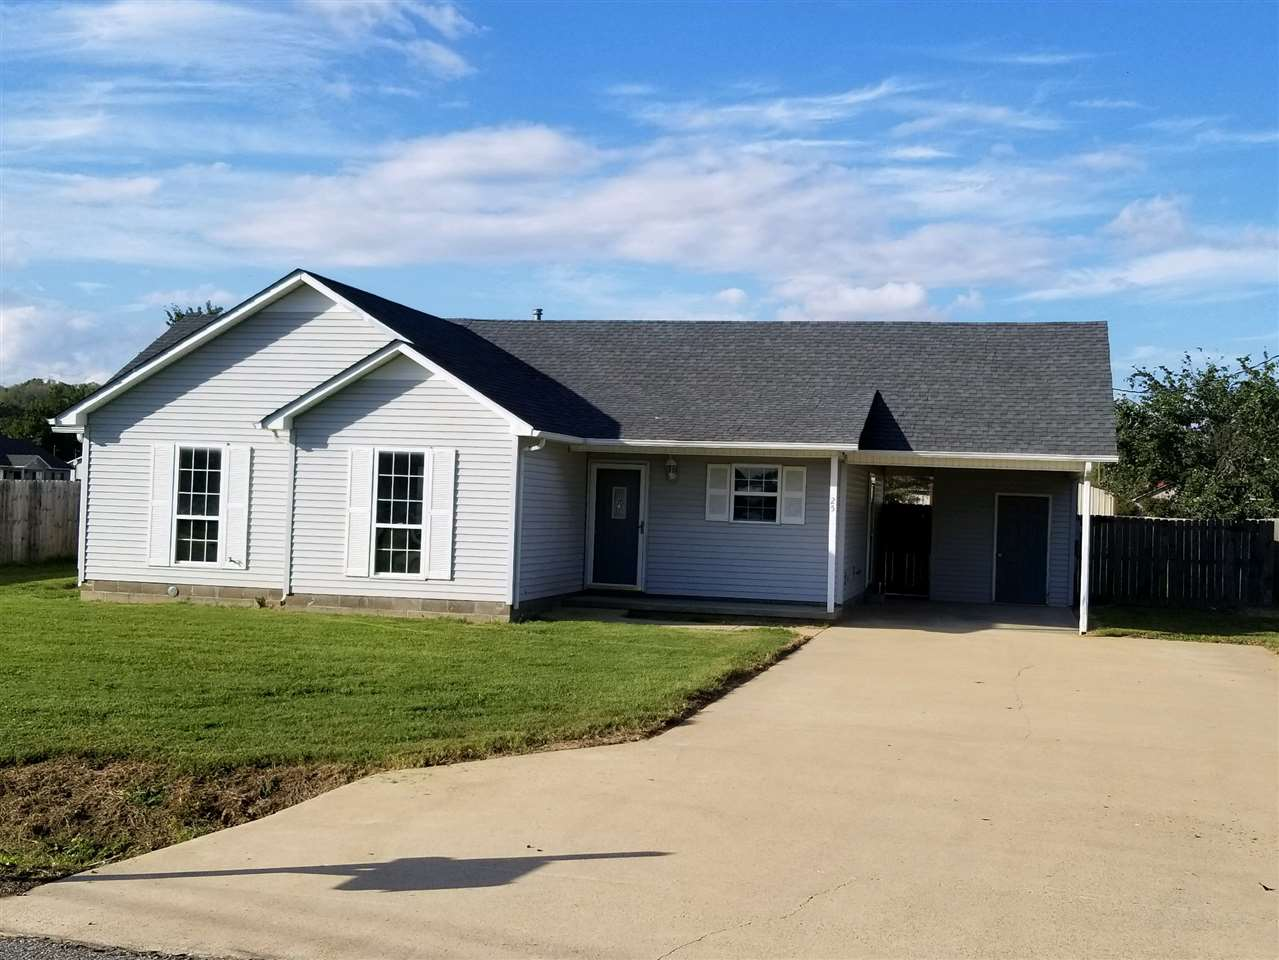 25 Kari Circle,Finley,Tennessee 38024,3 Bedrooms Bedrooms,2 BathroomsBathrooms,Residential,25 Kari Circle,185775